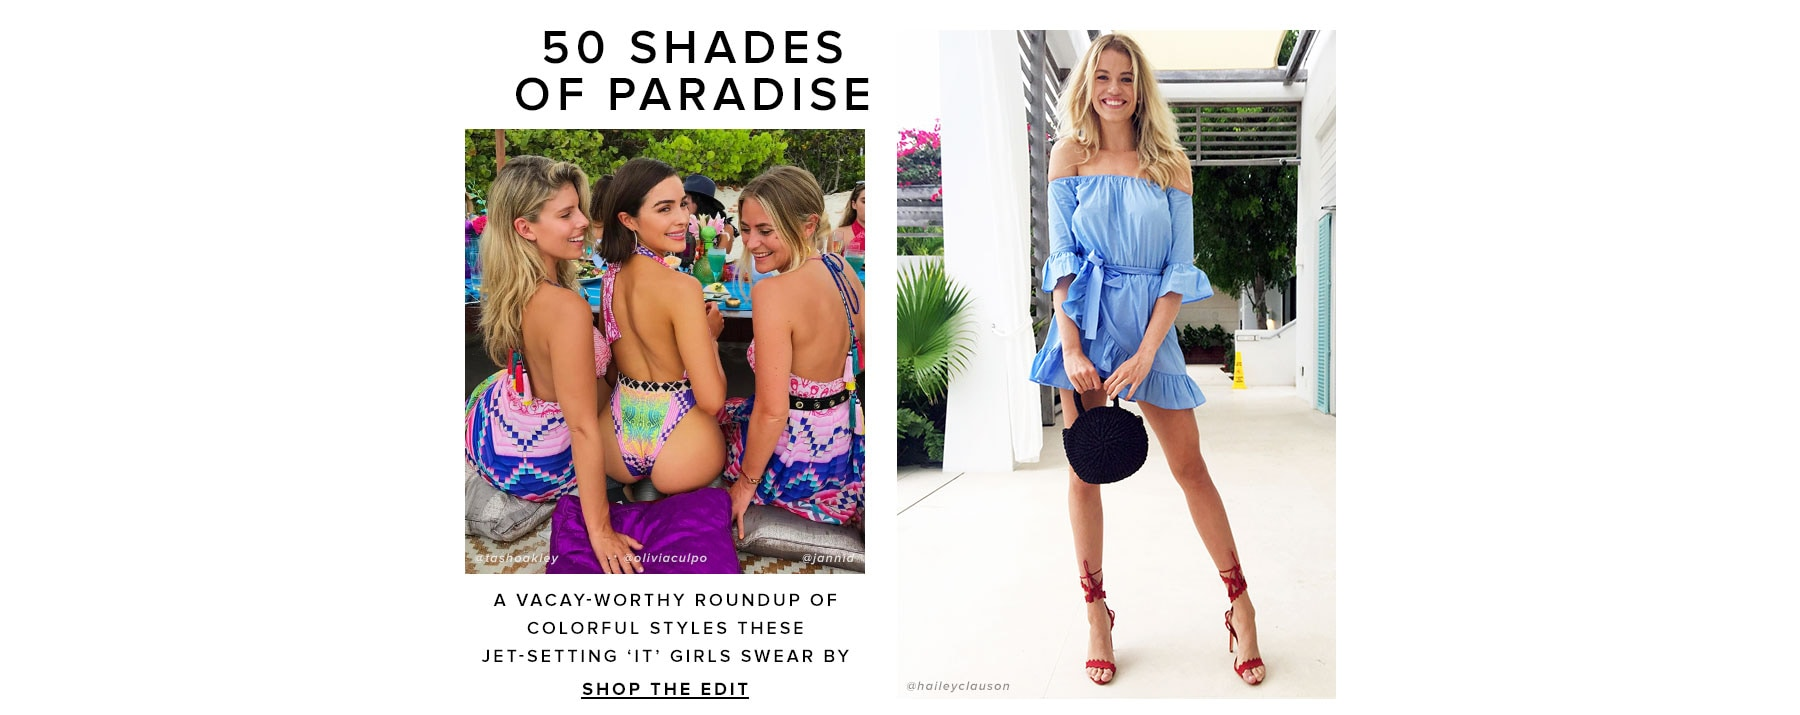 50 Shades of Paradise. A vacay-worthy roundup of colorful styles these jet-setting 'It' girls swear by. Shop the Edit.